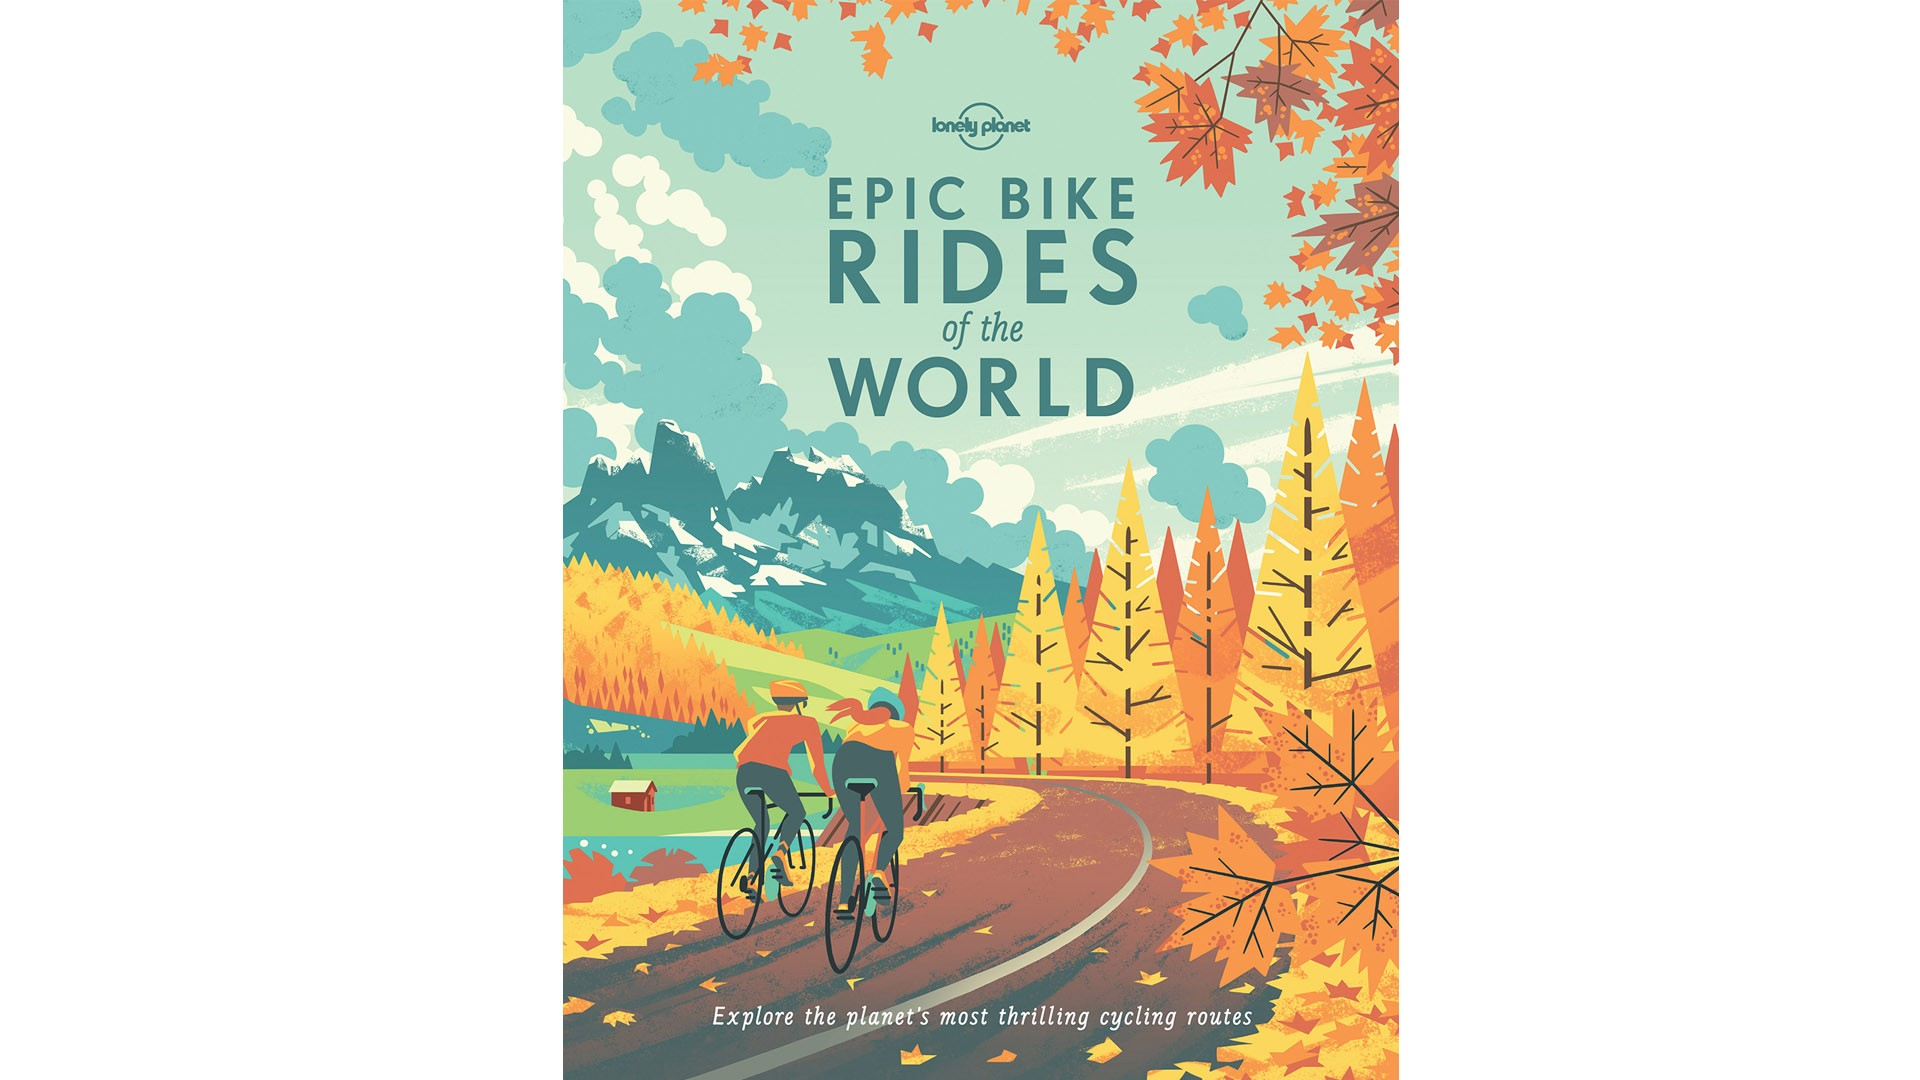 A beautiful book for casual reading, or adventure planning!